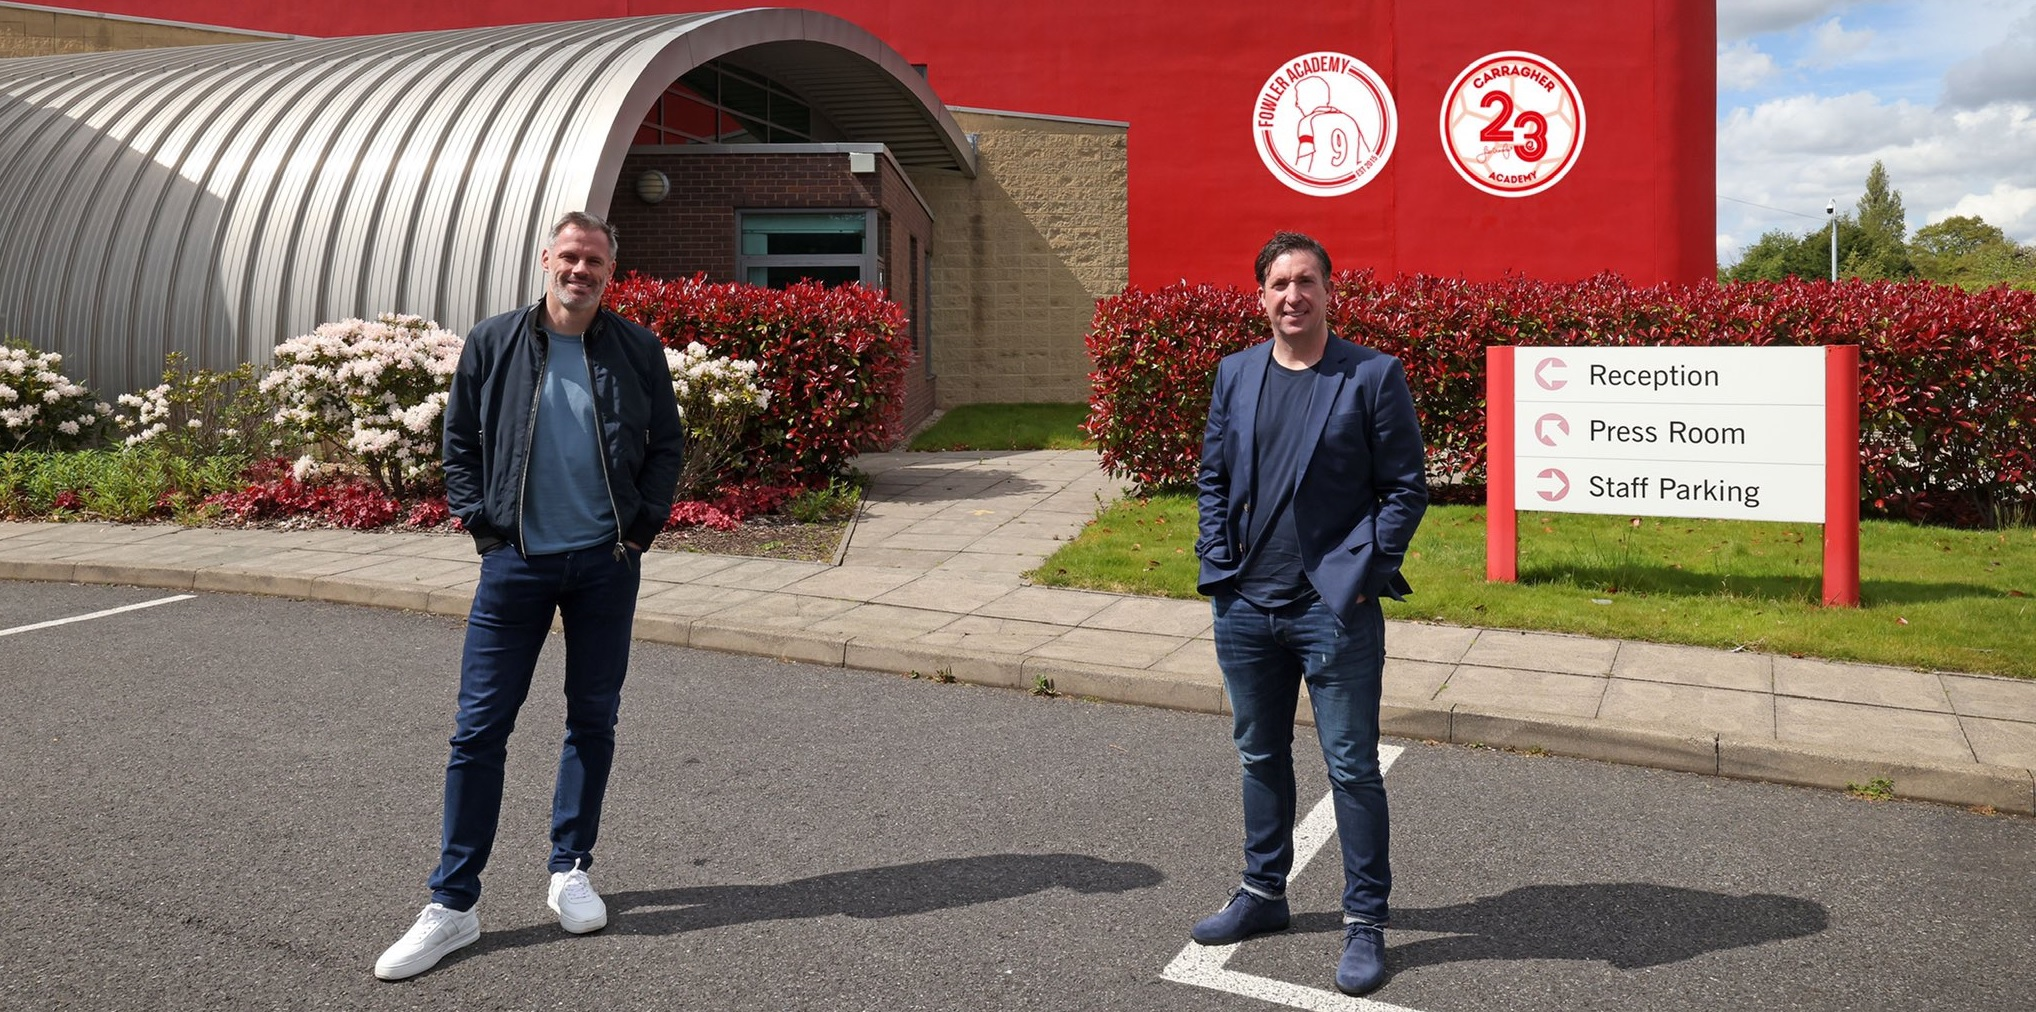 James Pearce reveals the fate of Melwood; Robbie Fowler and Jamie Carragher involved